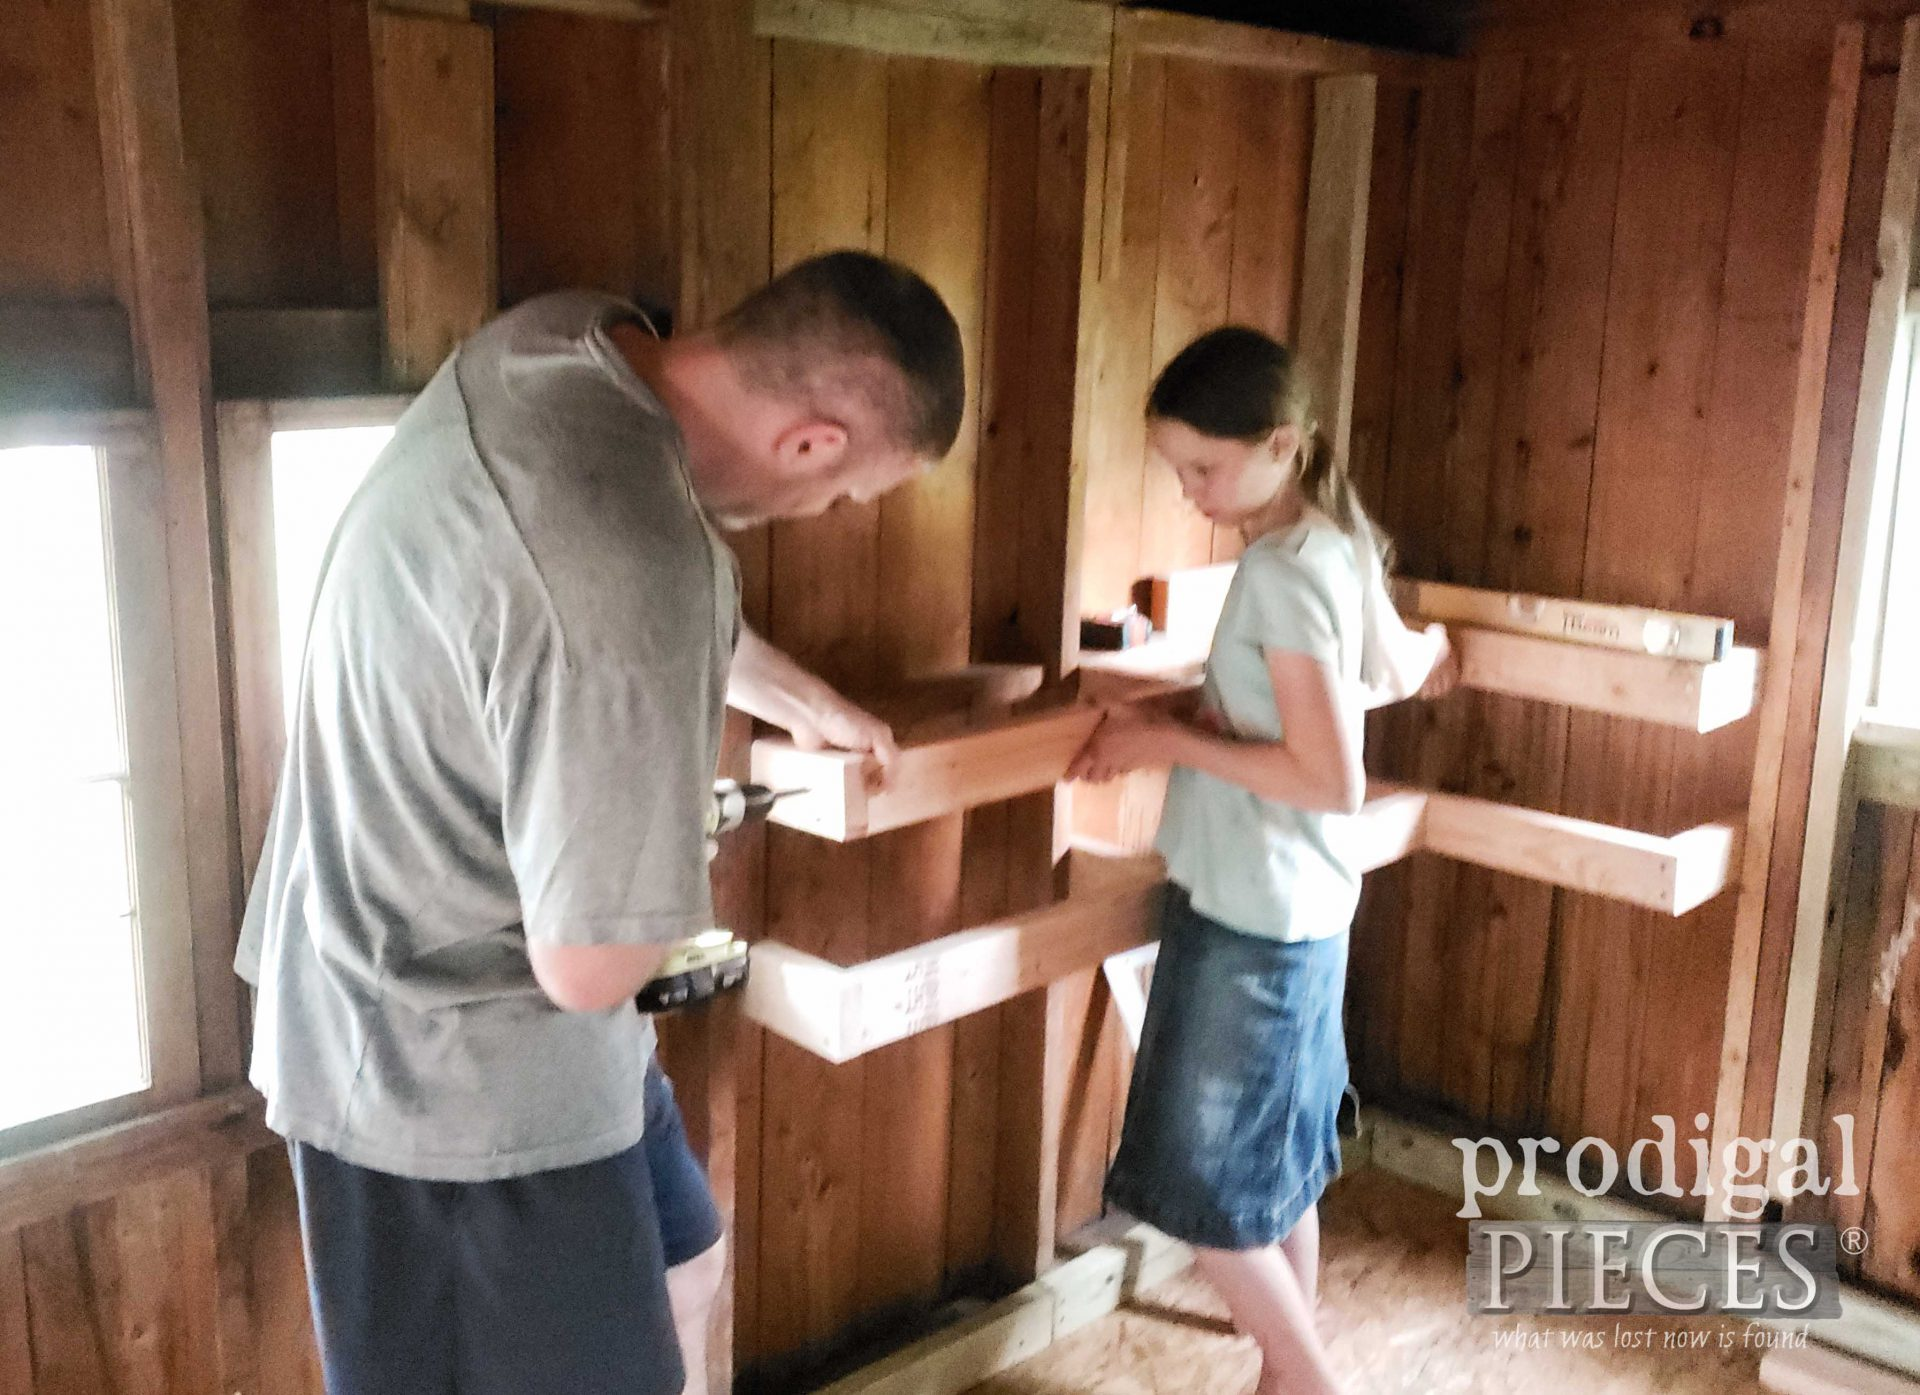 Daughter Helping Dad | prodigalpieces.com